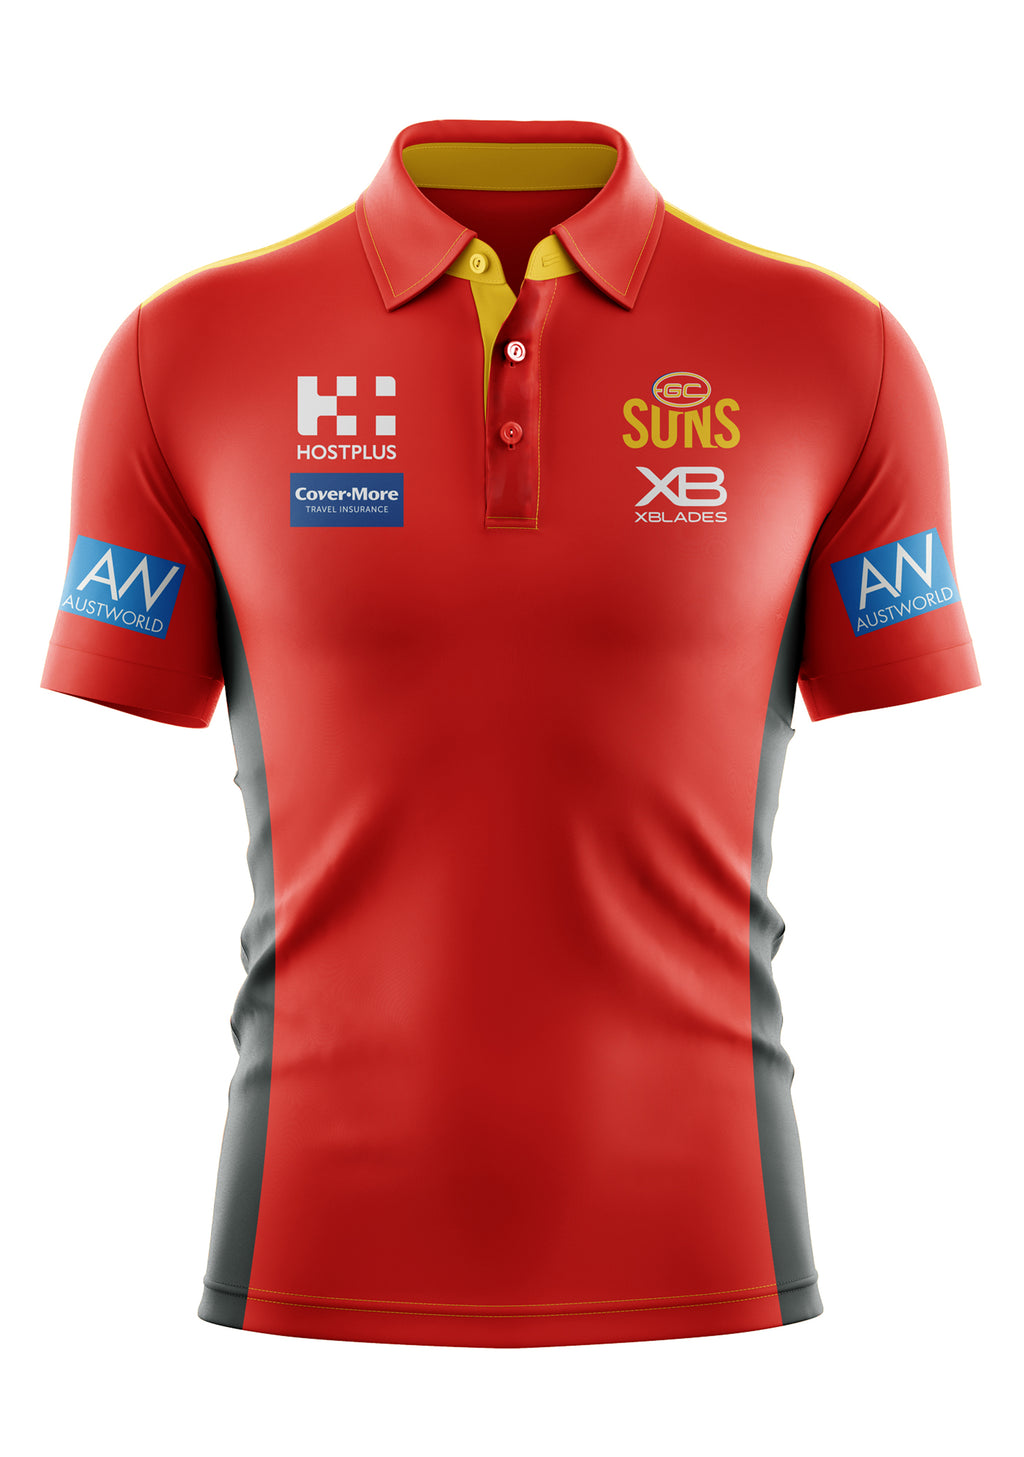 XBLADES GOLD COAST SUNS MENS 2019 MEDIA POLO <BR> GCS-MDP-L19 M-L-RDG